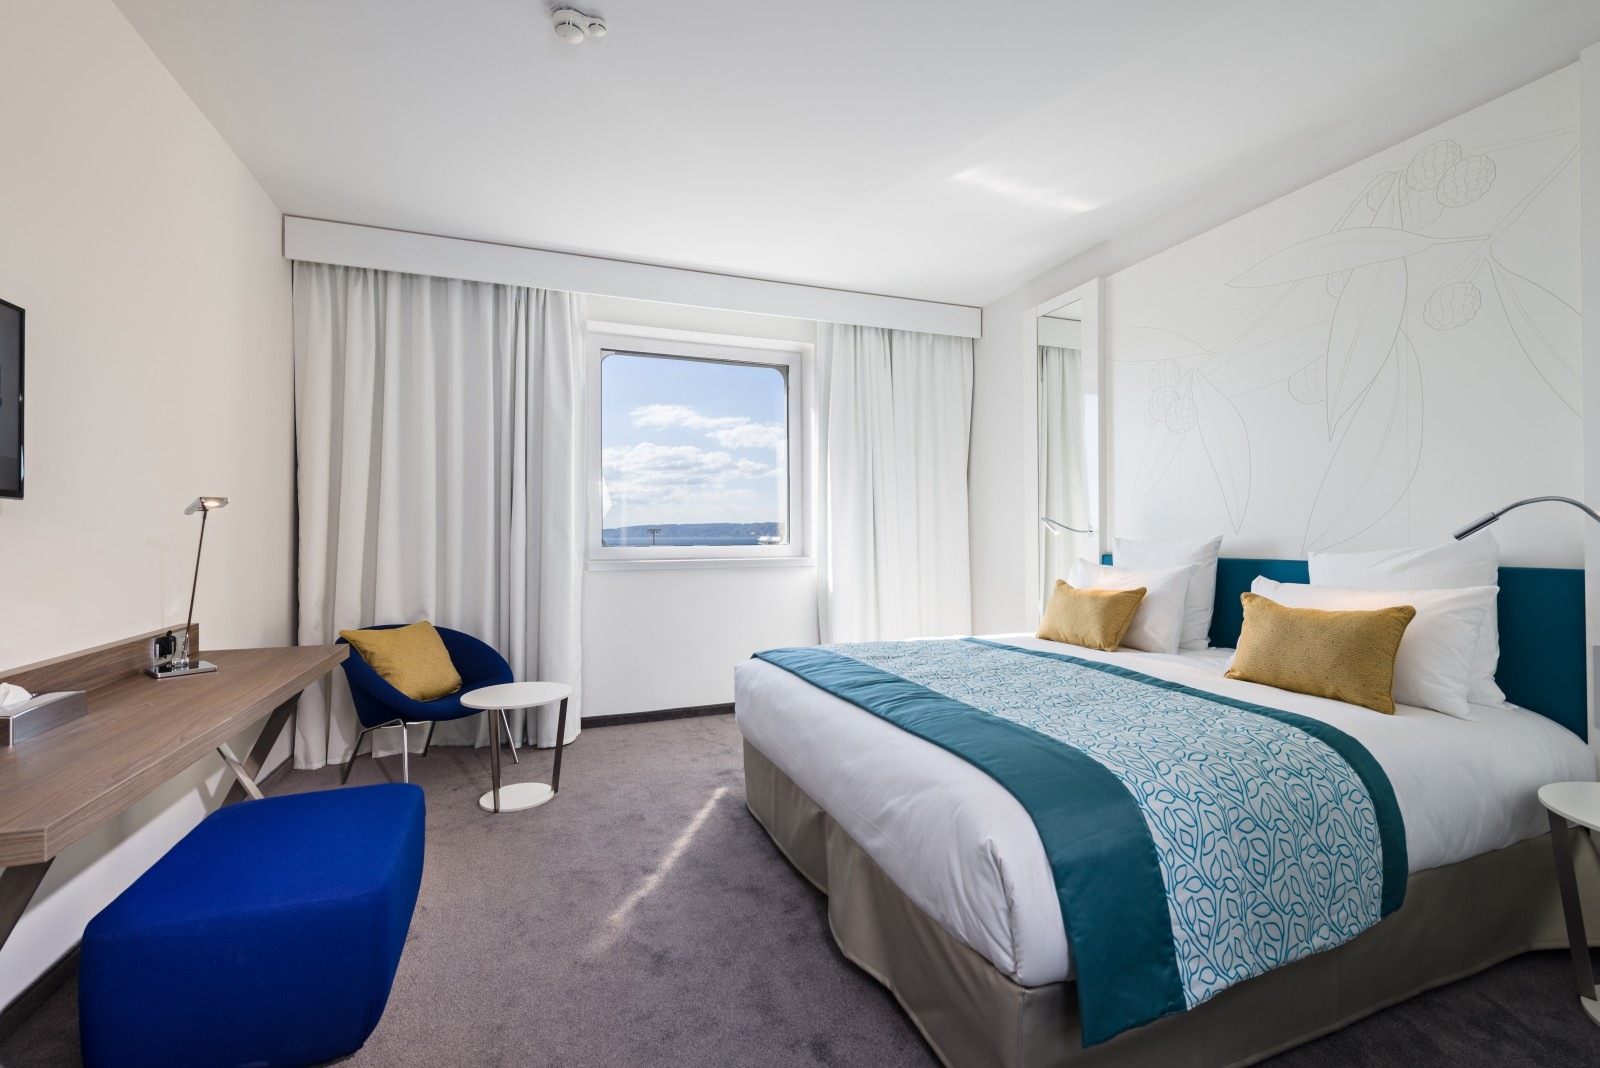 Golden tulip marseille euromed l h tel 4 toiles for Hotels 4 etoiles marseille